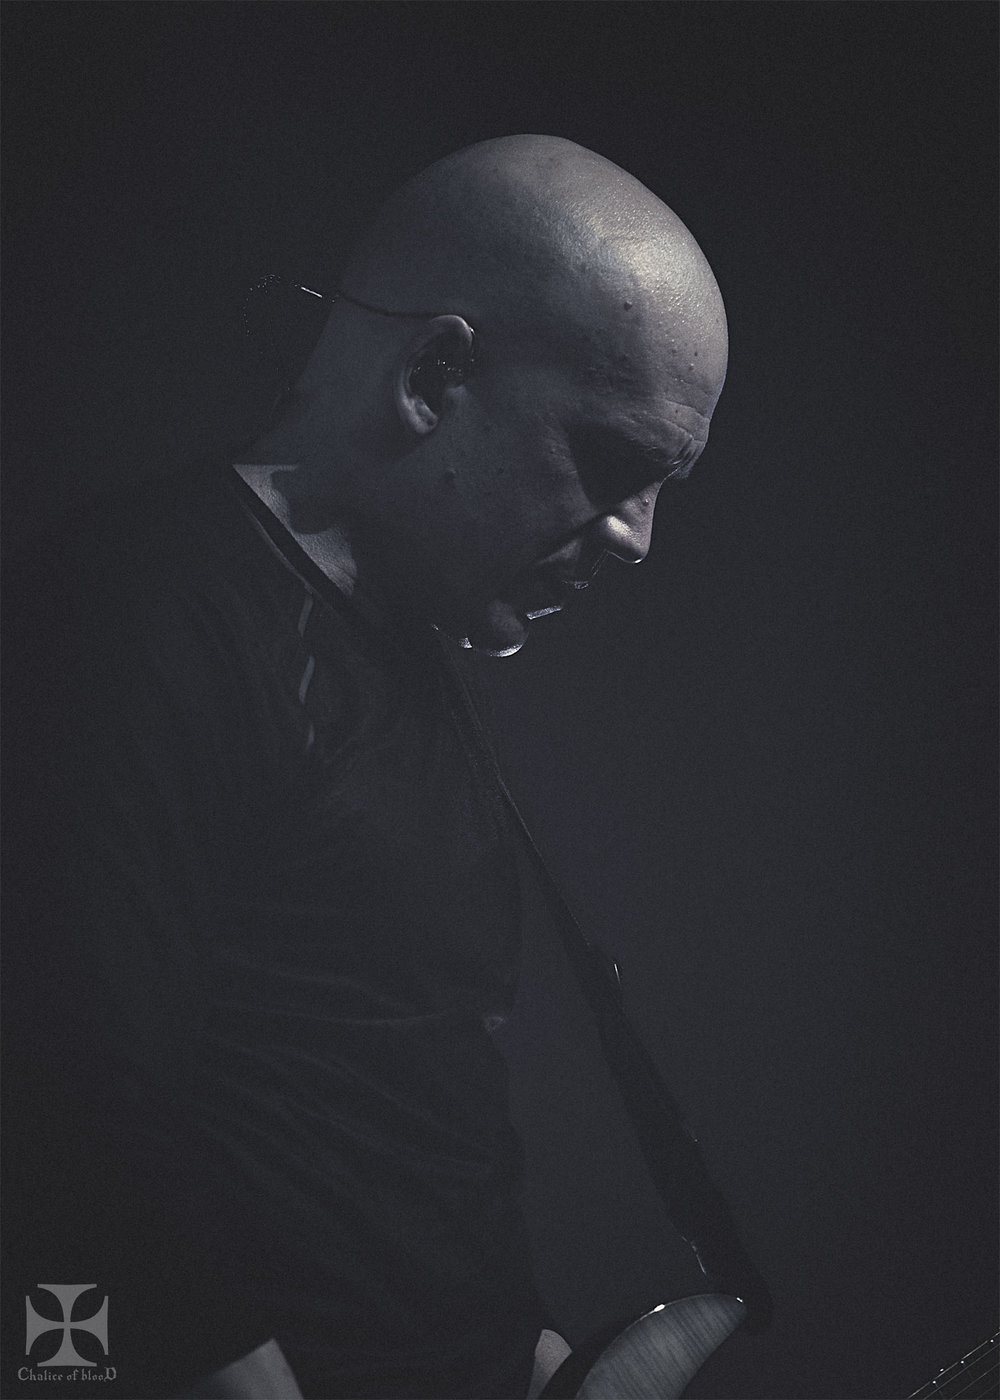 2017.05-Devin-Townsend---144-Exposure-watermarked.jpg